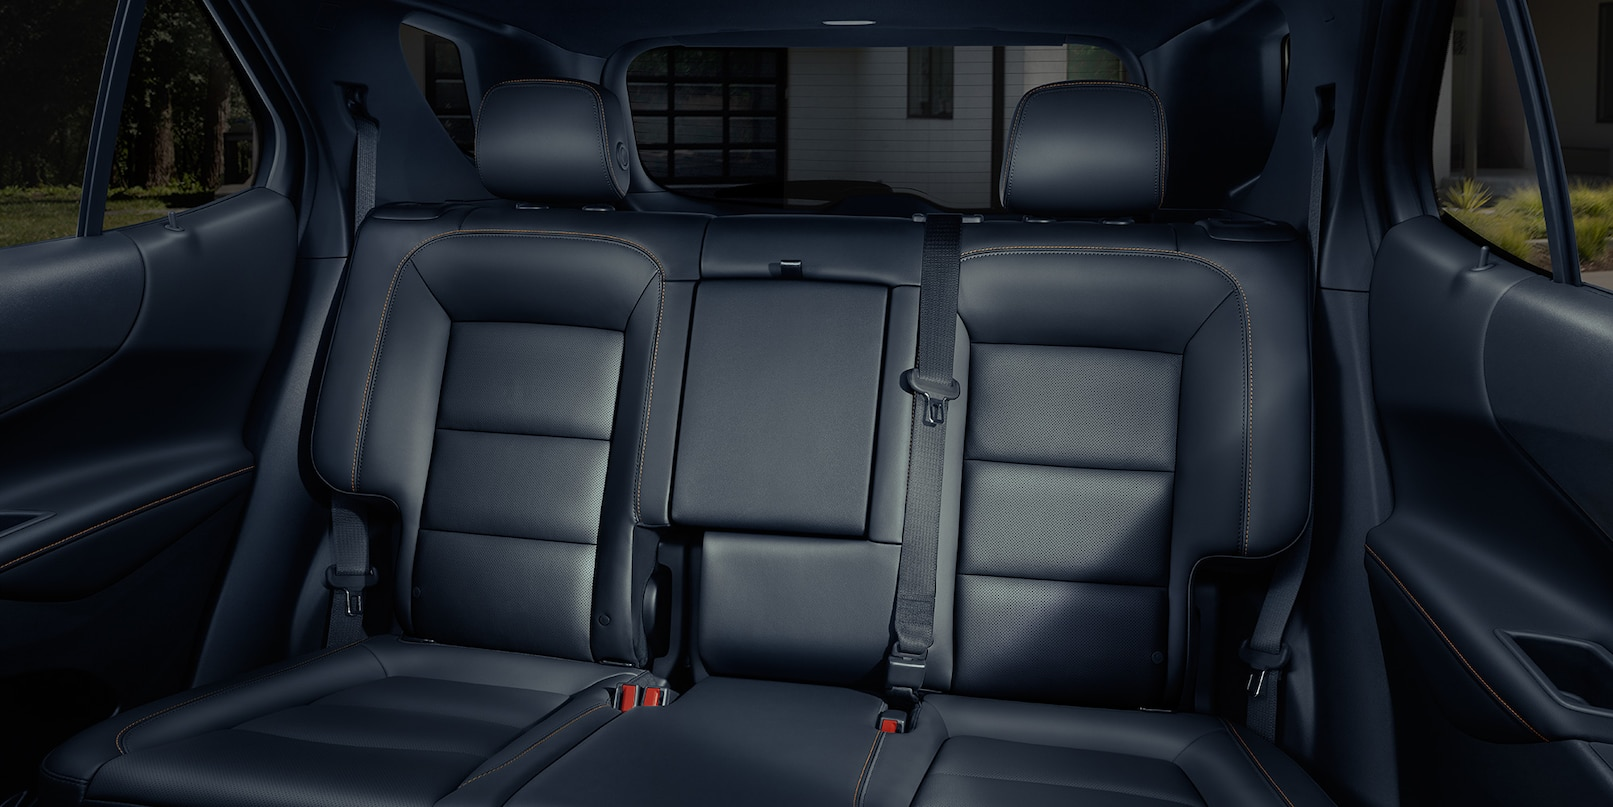 Comfort and Space in the Chevrolet Equinox